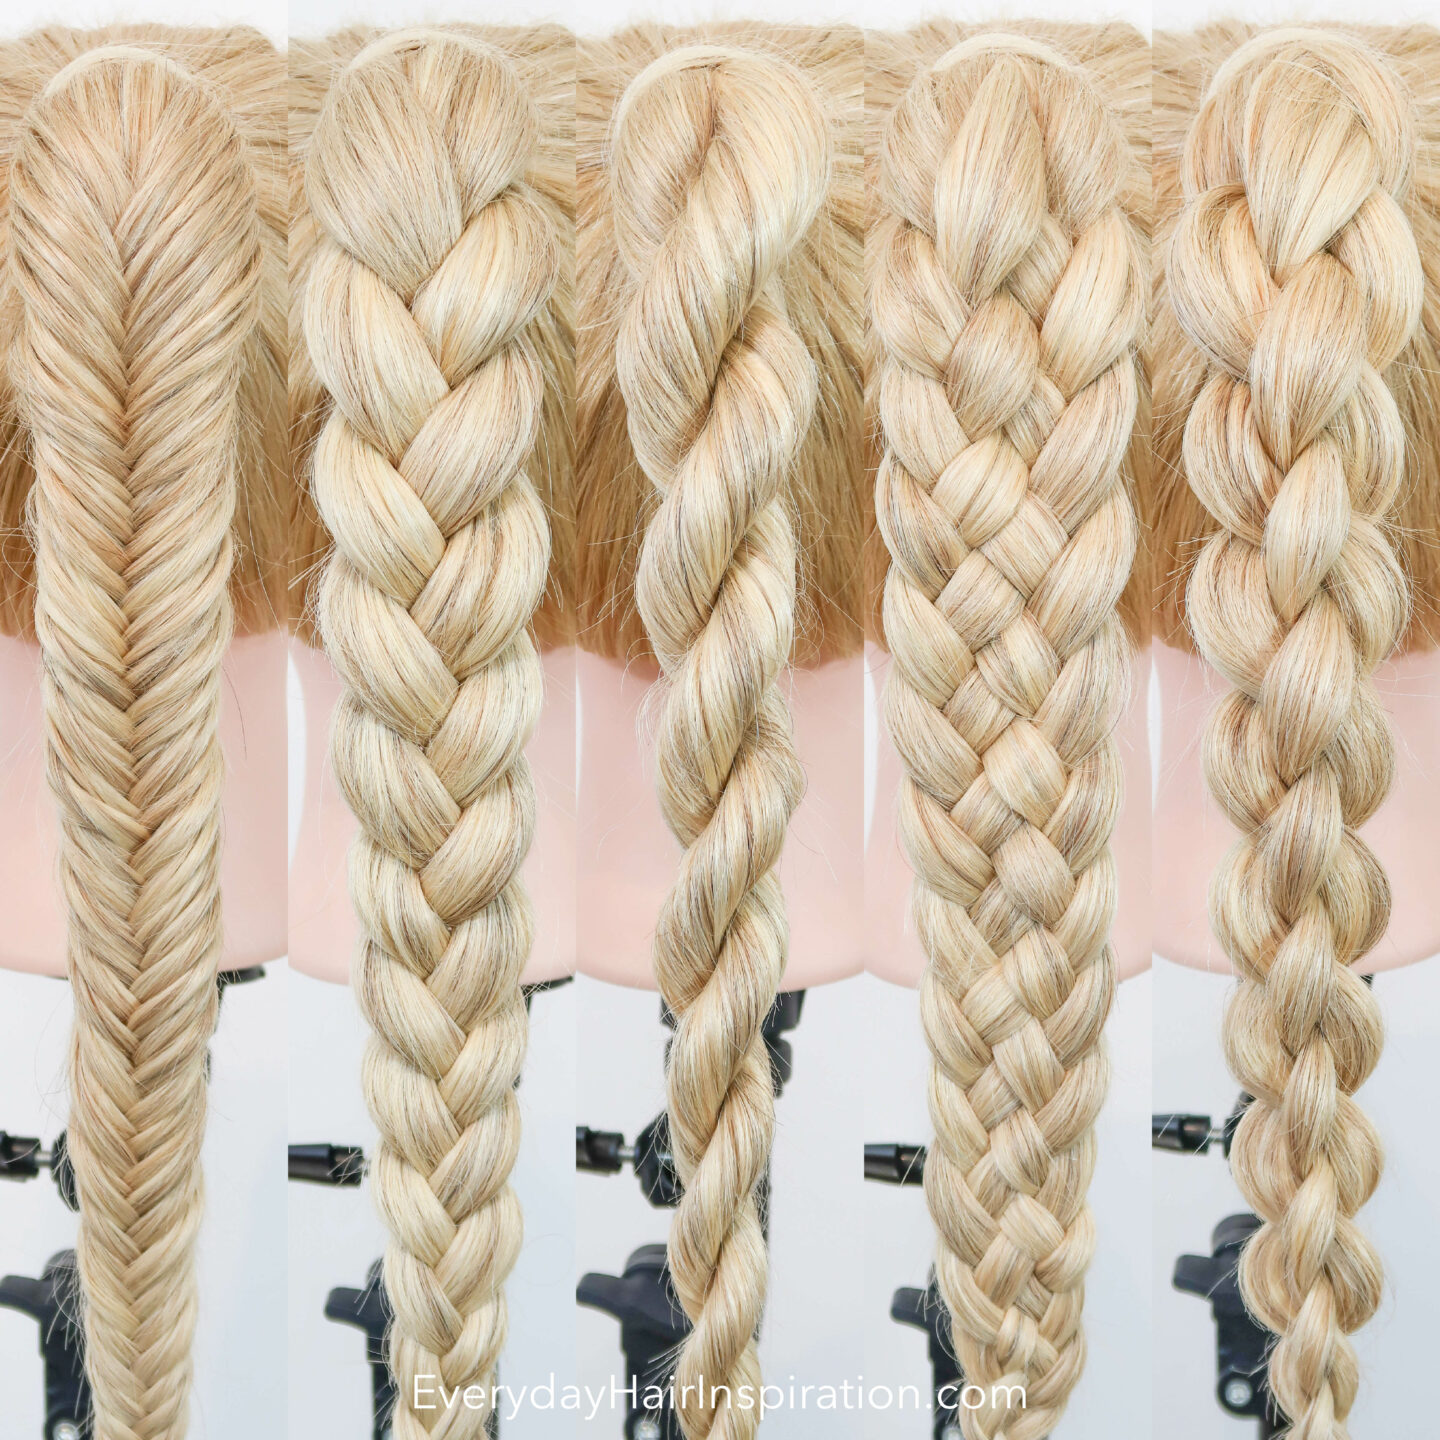 5 Braids in a high ponytail, shown from the back on a blonde hairdresser doll. From left to right: fishtail braid, 3 strand braid, rope braid, 5 strand braid and a 4 strand round braid.